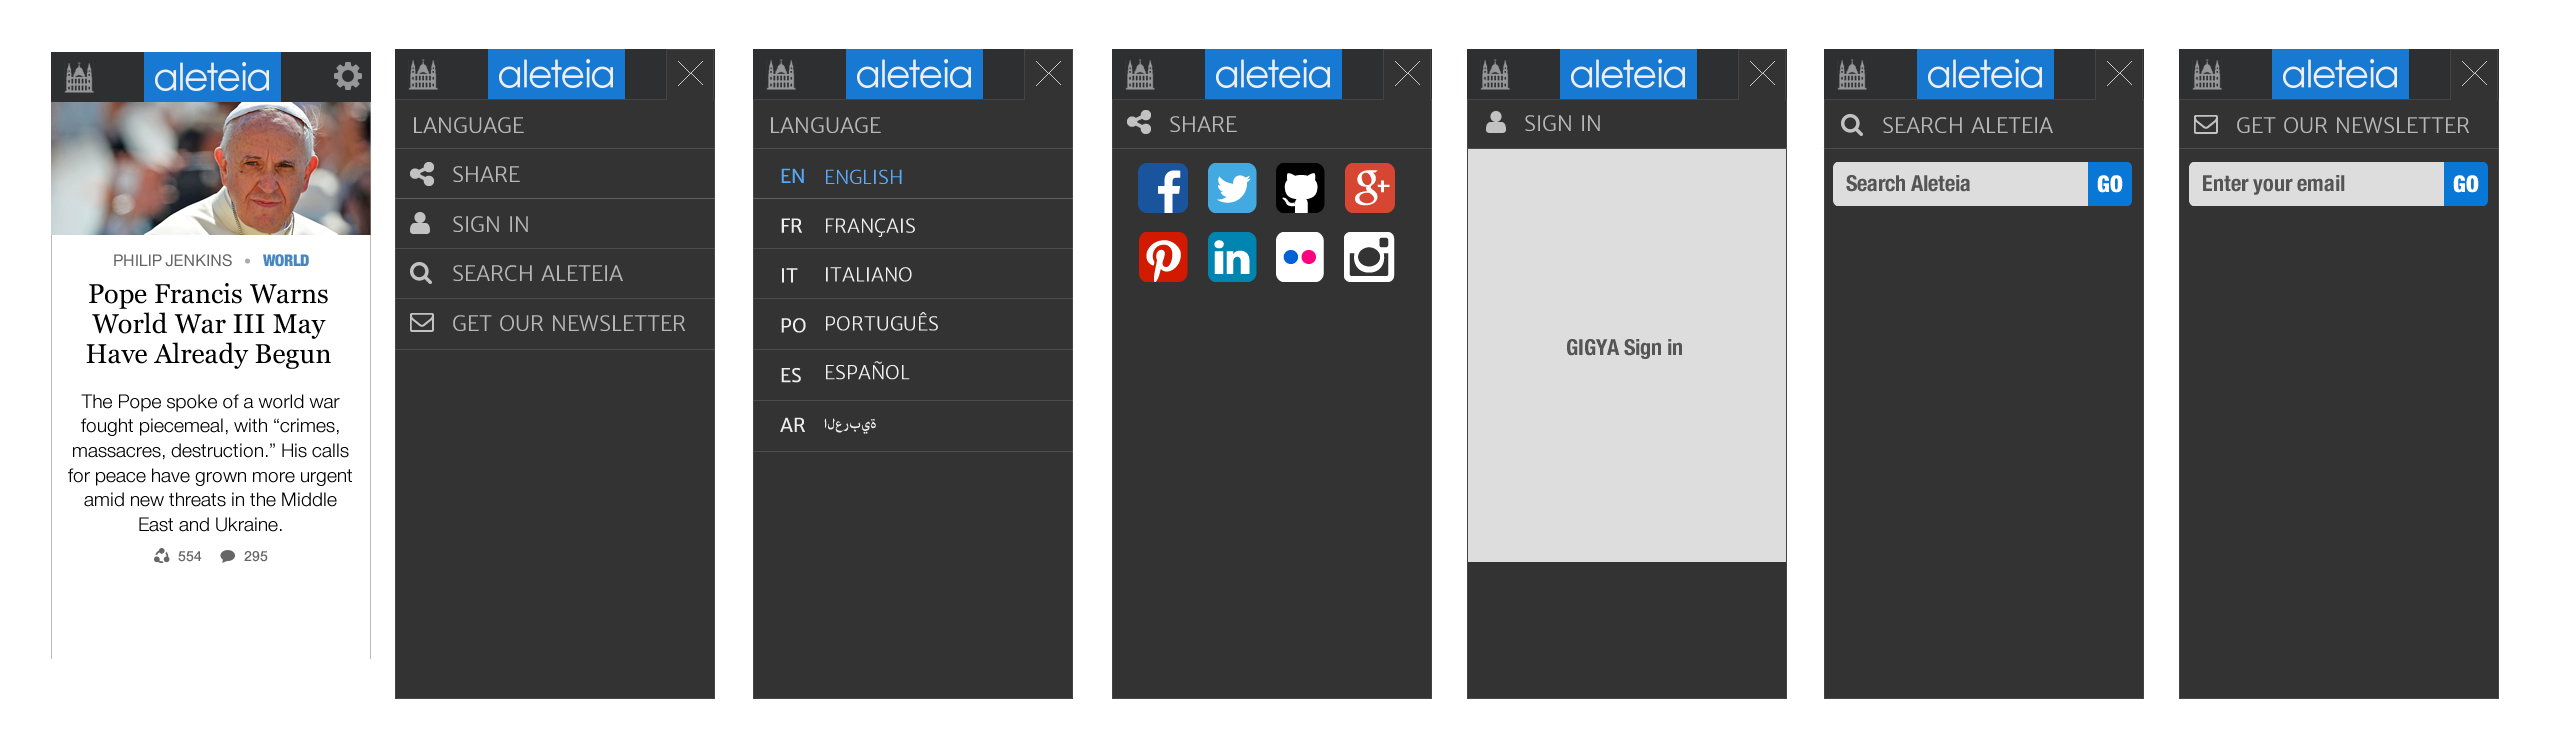 new mobile aleteia